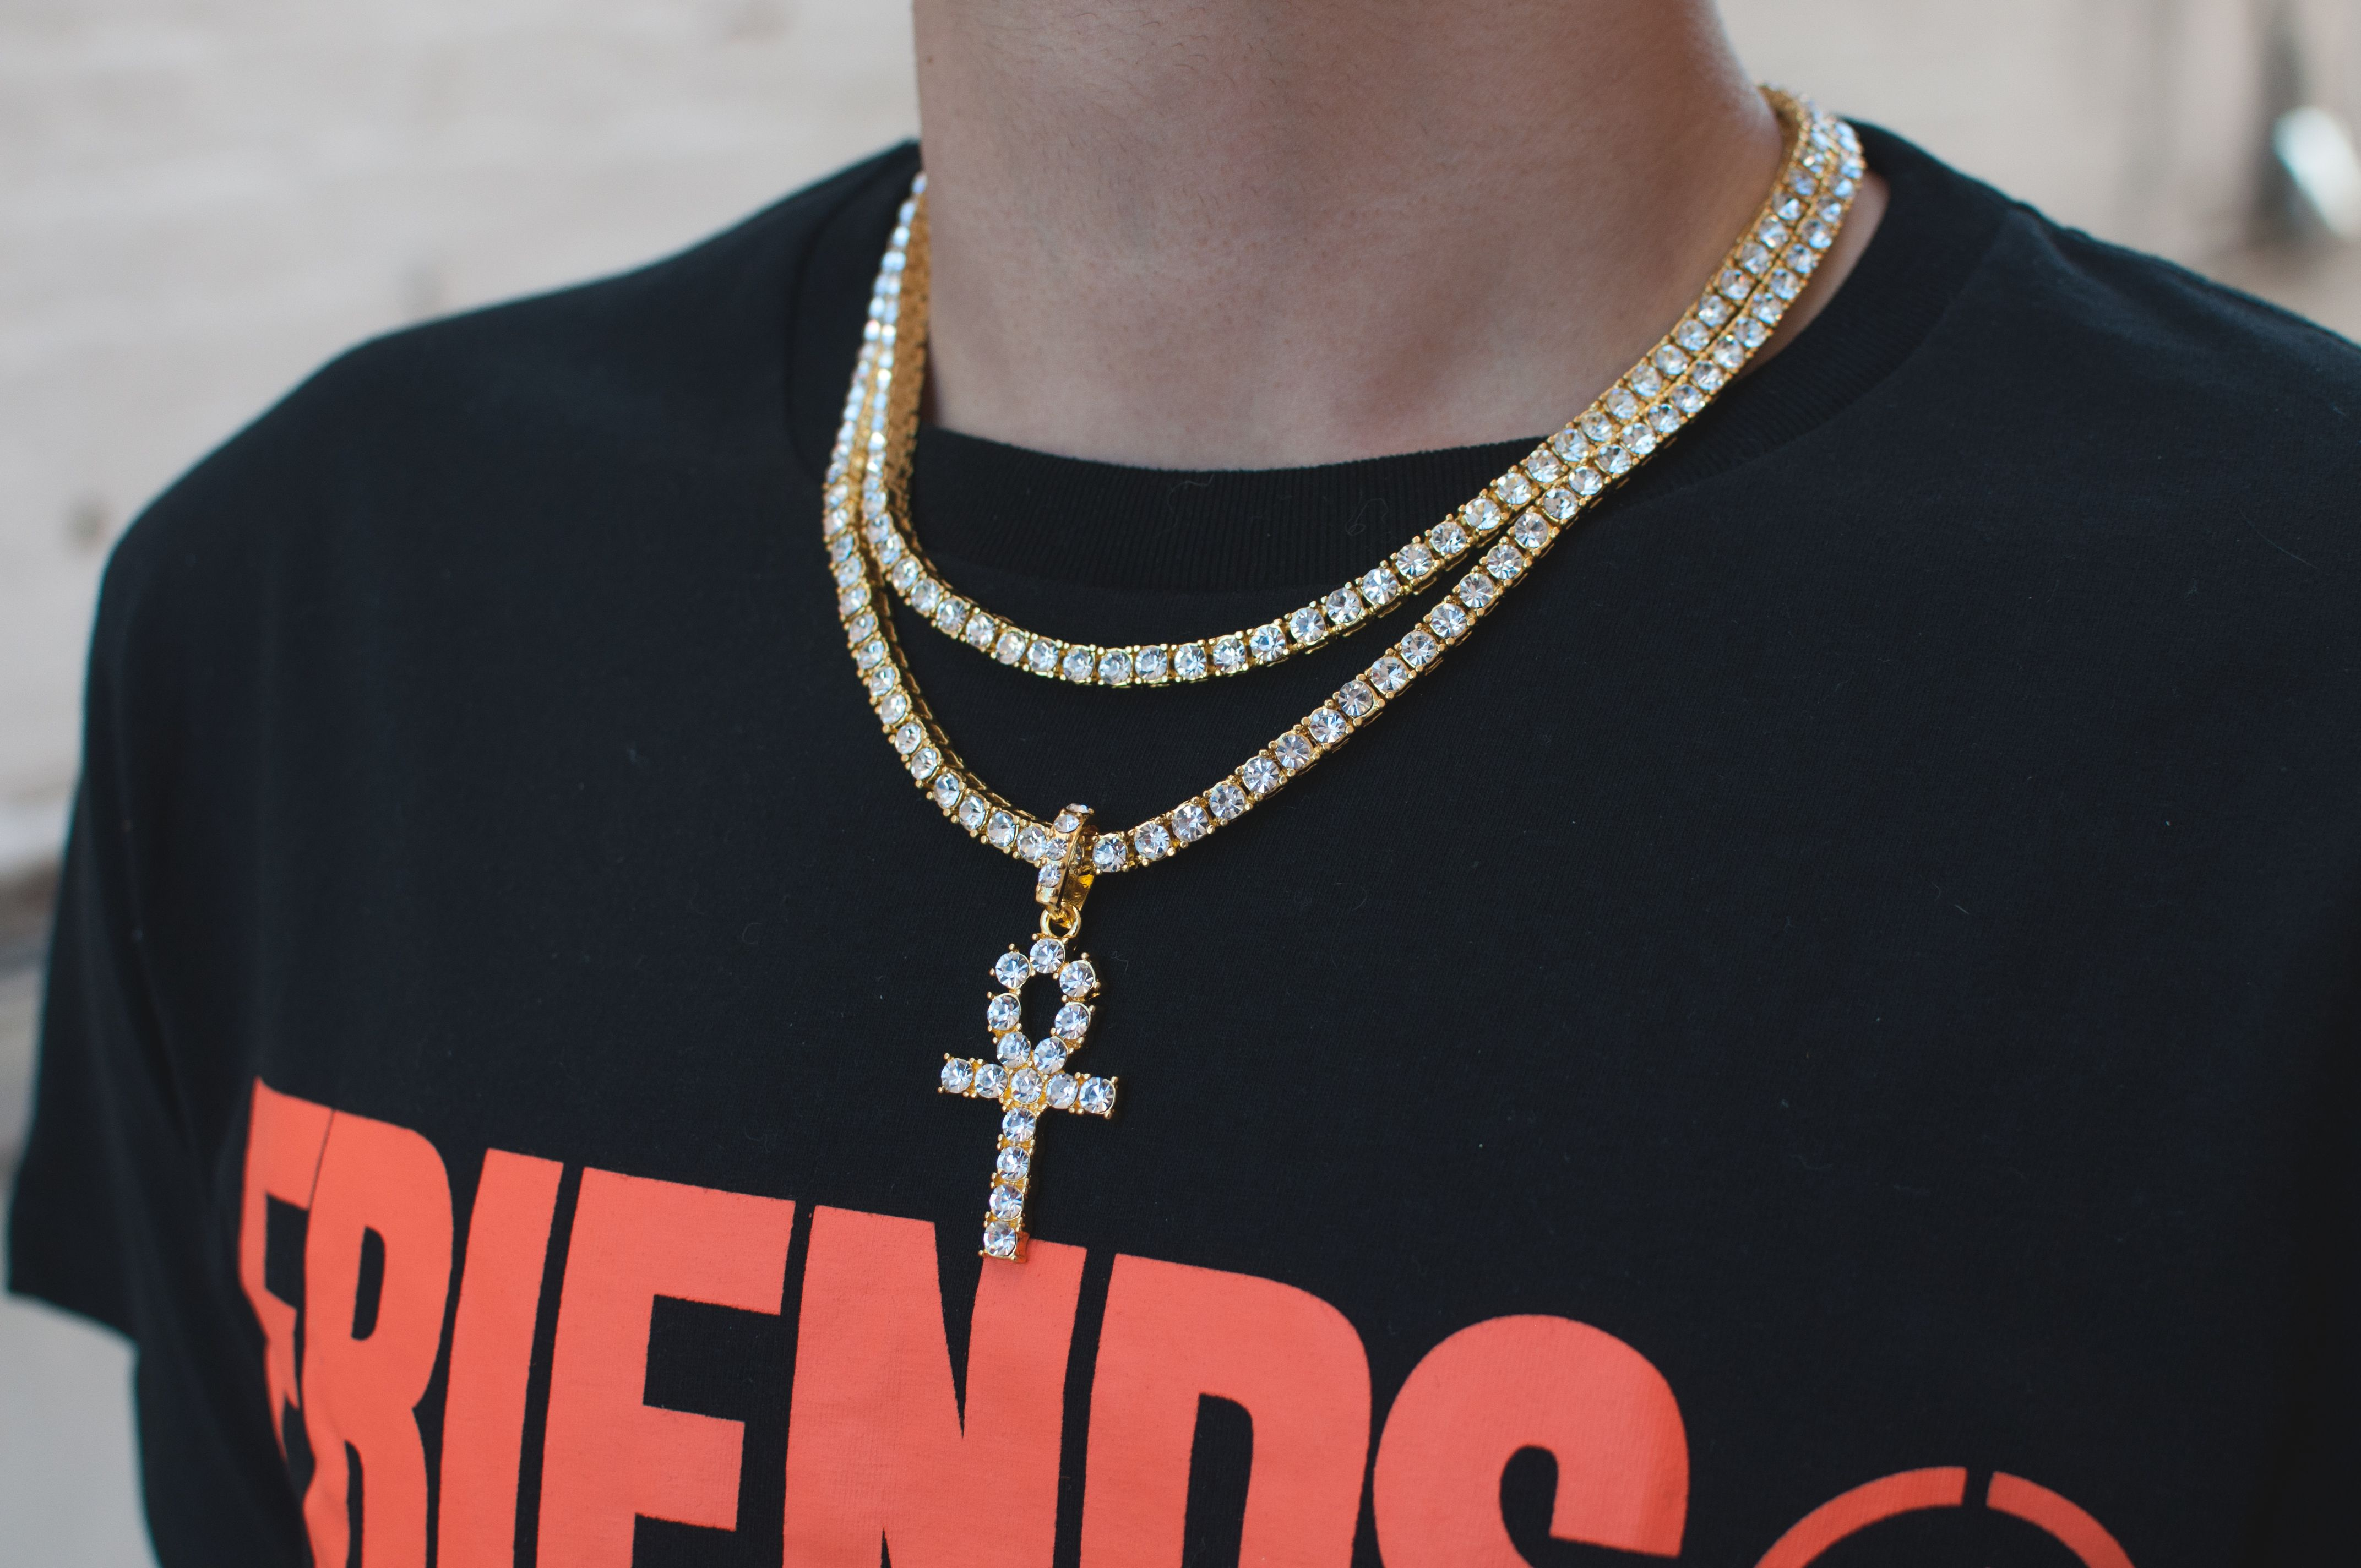 Diamond Tennis Chains With Ankh Bundle Gold Grillz Hip Hop Jewelry Chain